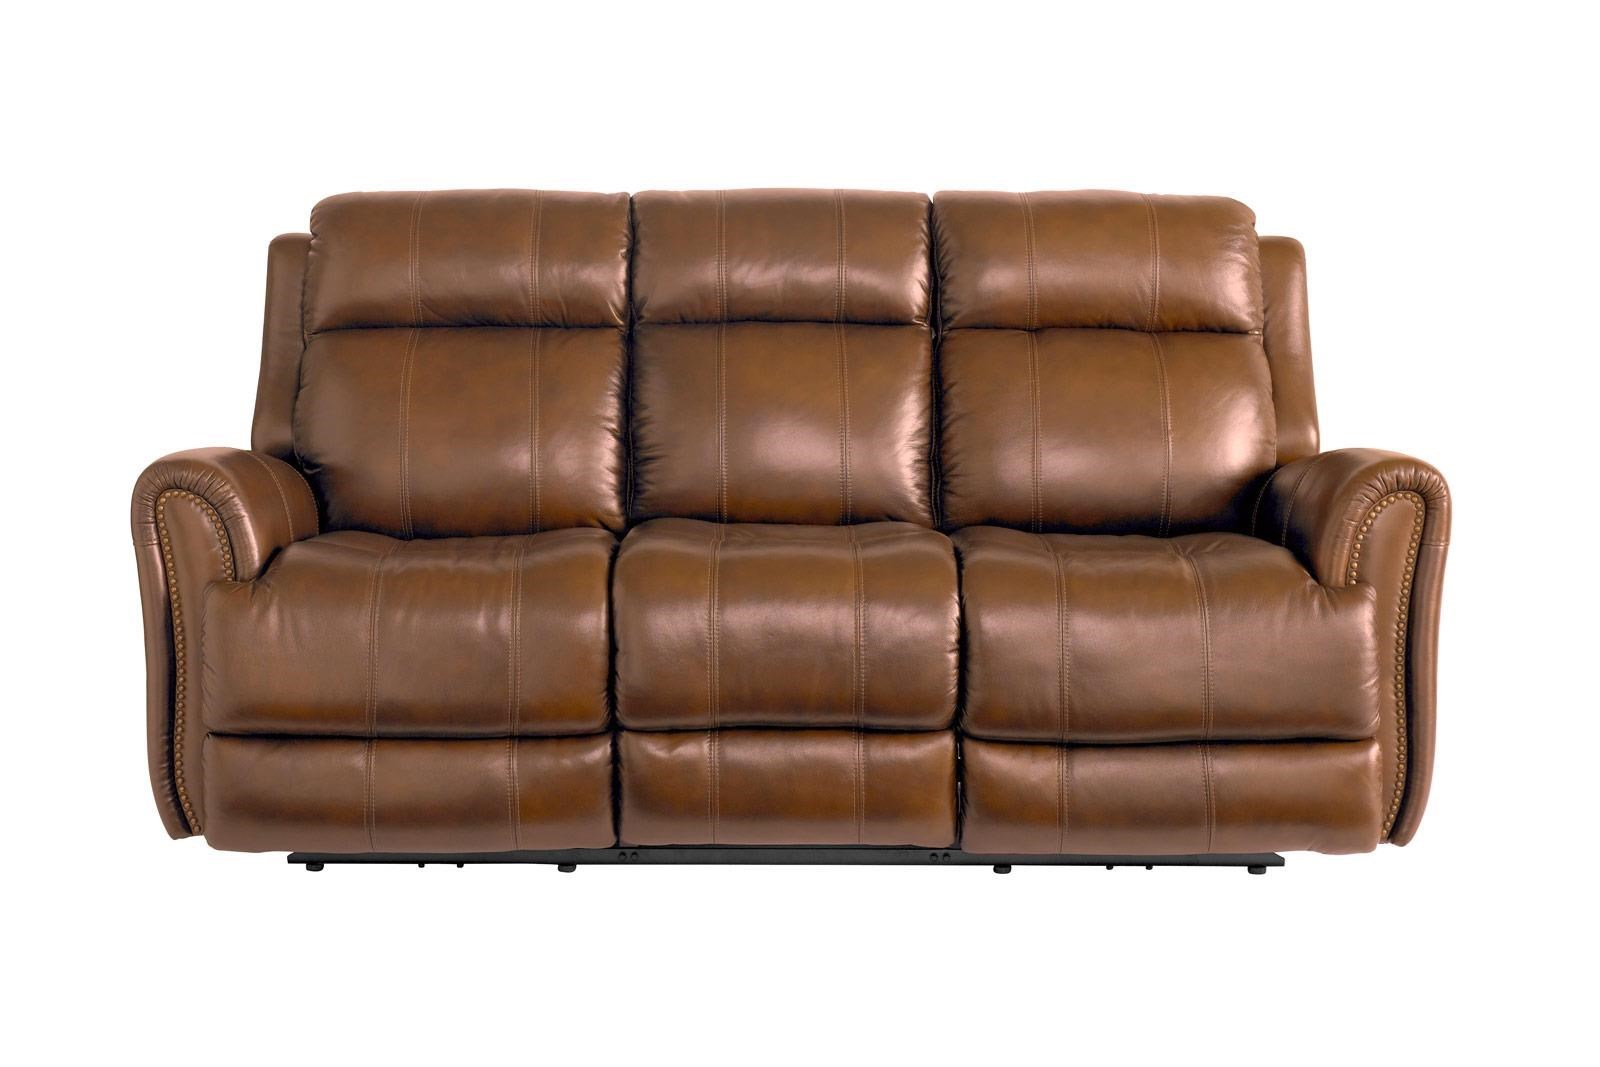 Bassett Marquee Umber Leather Power Reclining Sofa with Power Headrest(color may differ from image) - Great American Home Store - Reclining Sofas  sc 1 st  Great American Home Store & Bassett Marquee Umber Leather Power Reclining Sofa with Power ... islam-shia.org